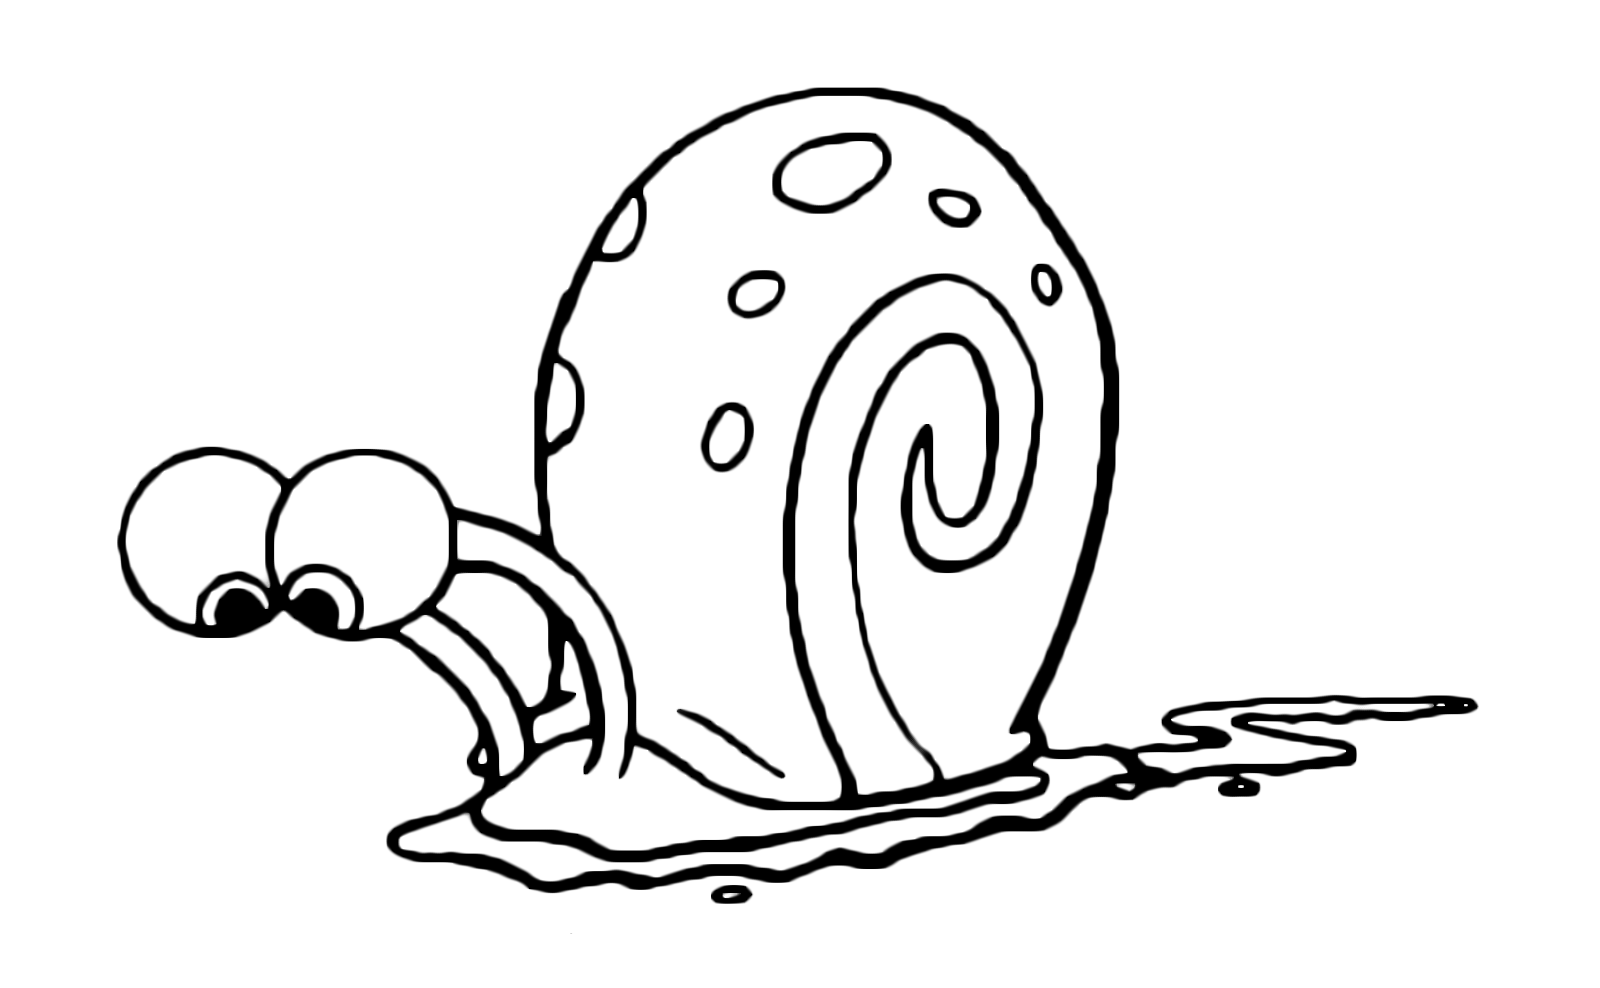 1600x988 awesome spongebob gary the snail looks at the ground puzzled